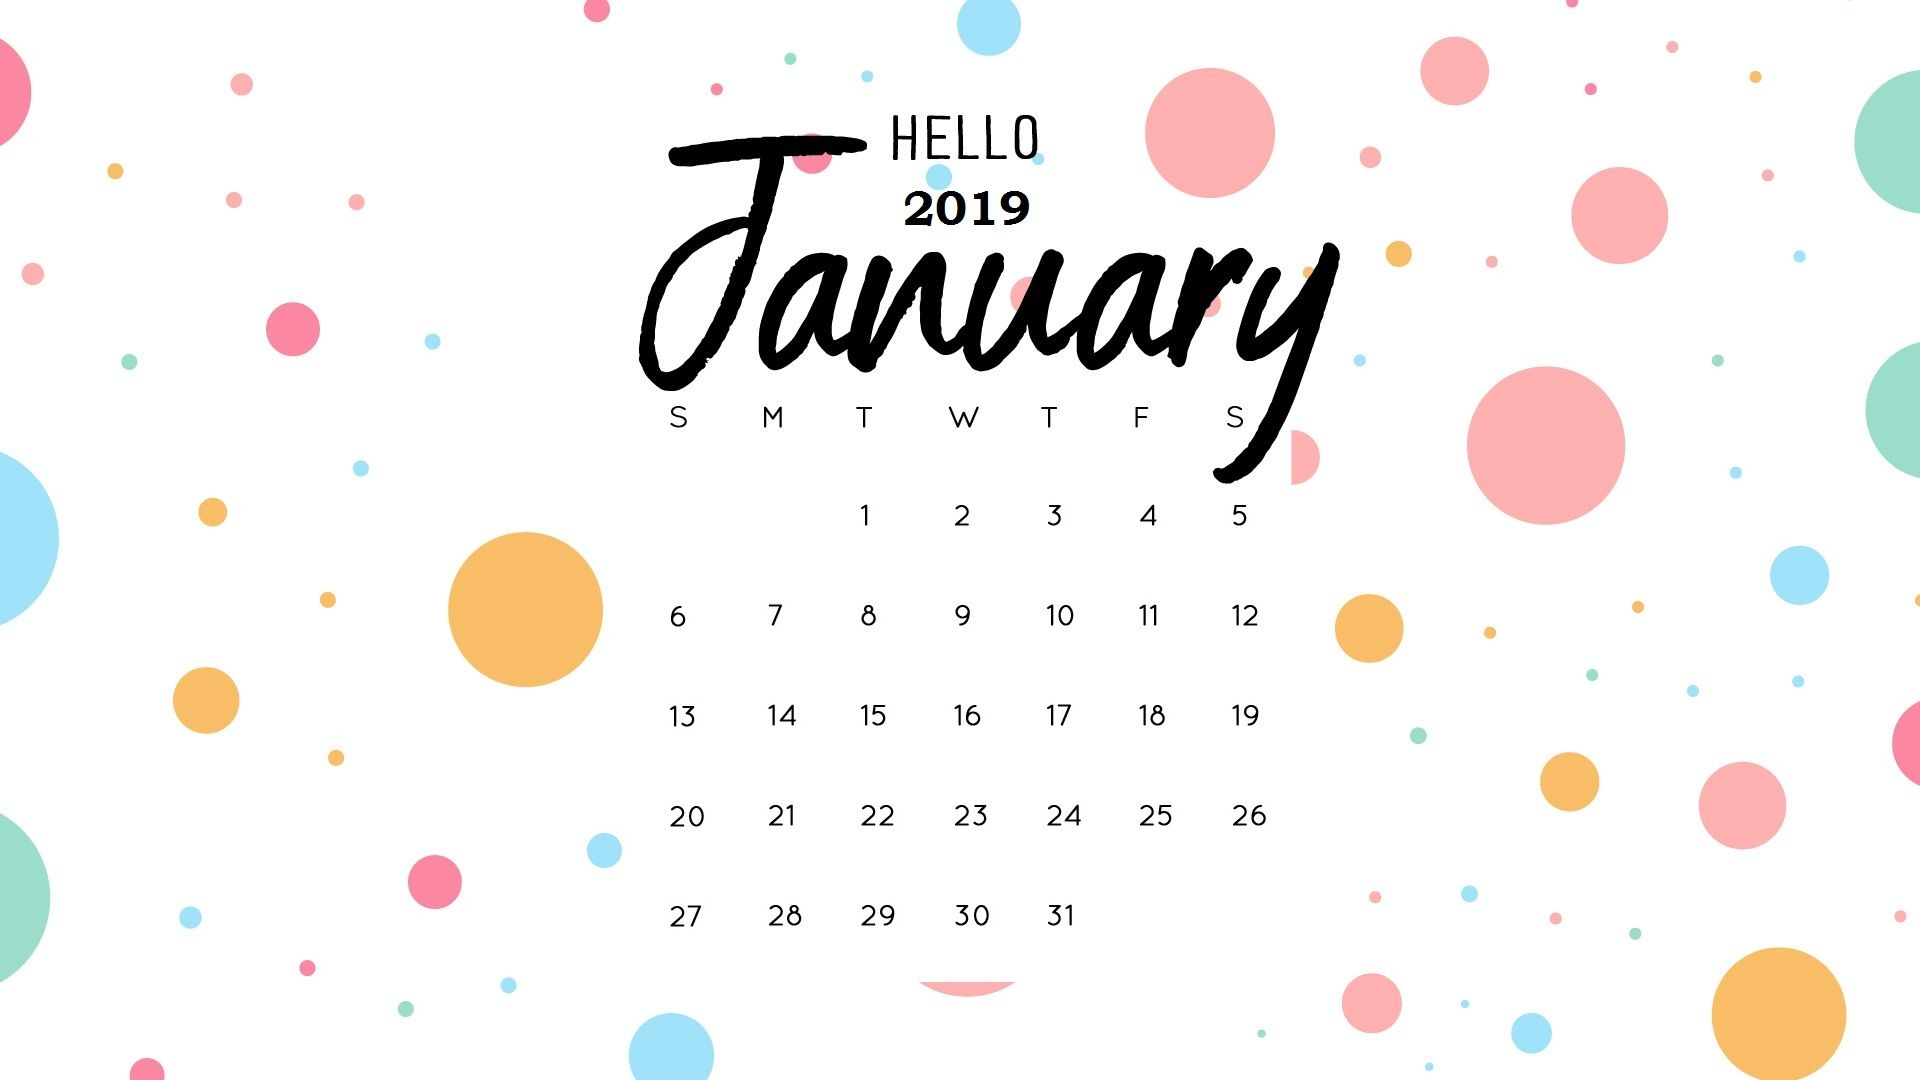 hello january 2019 calendar wallpaper monthly calendar templates::January 2019 iPhone Calendar